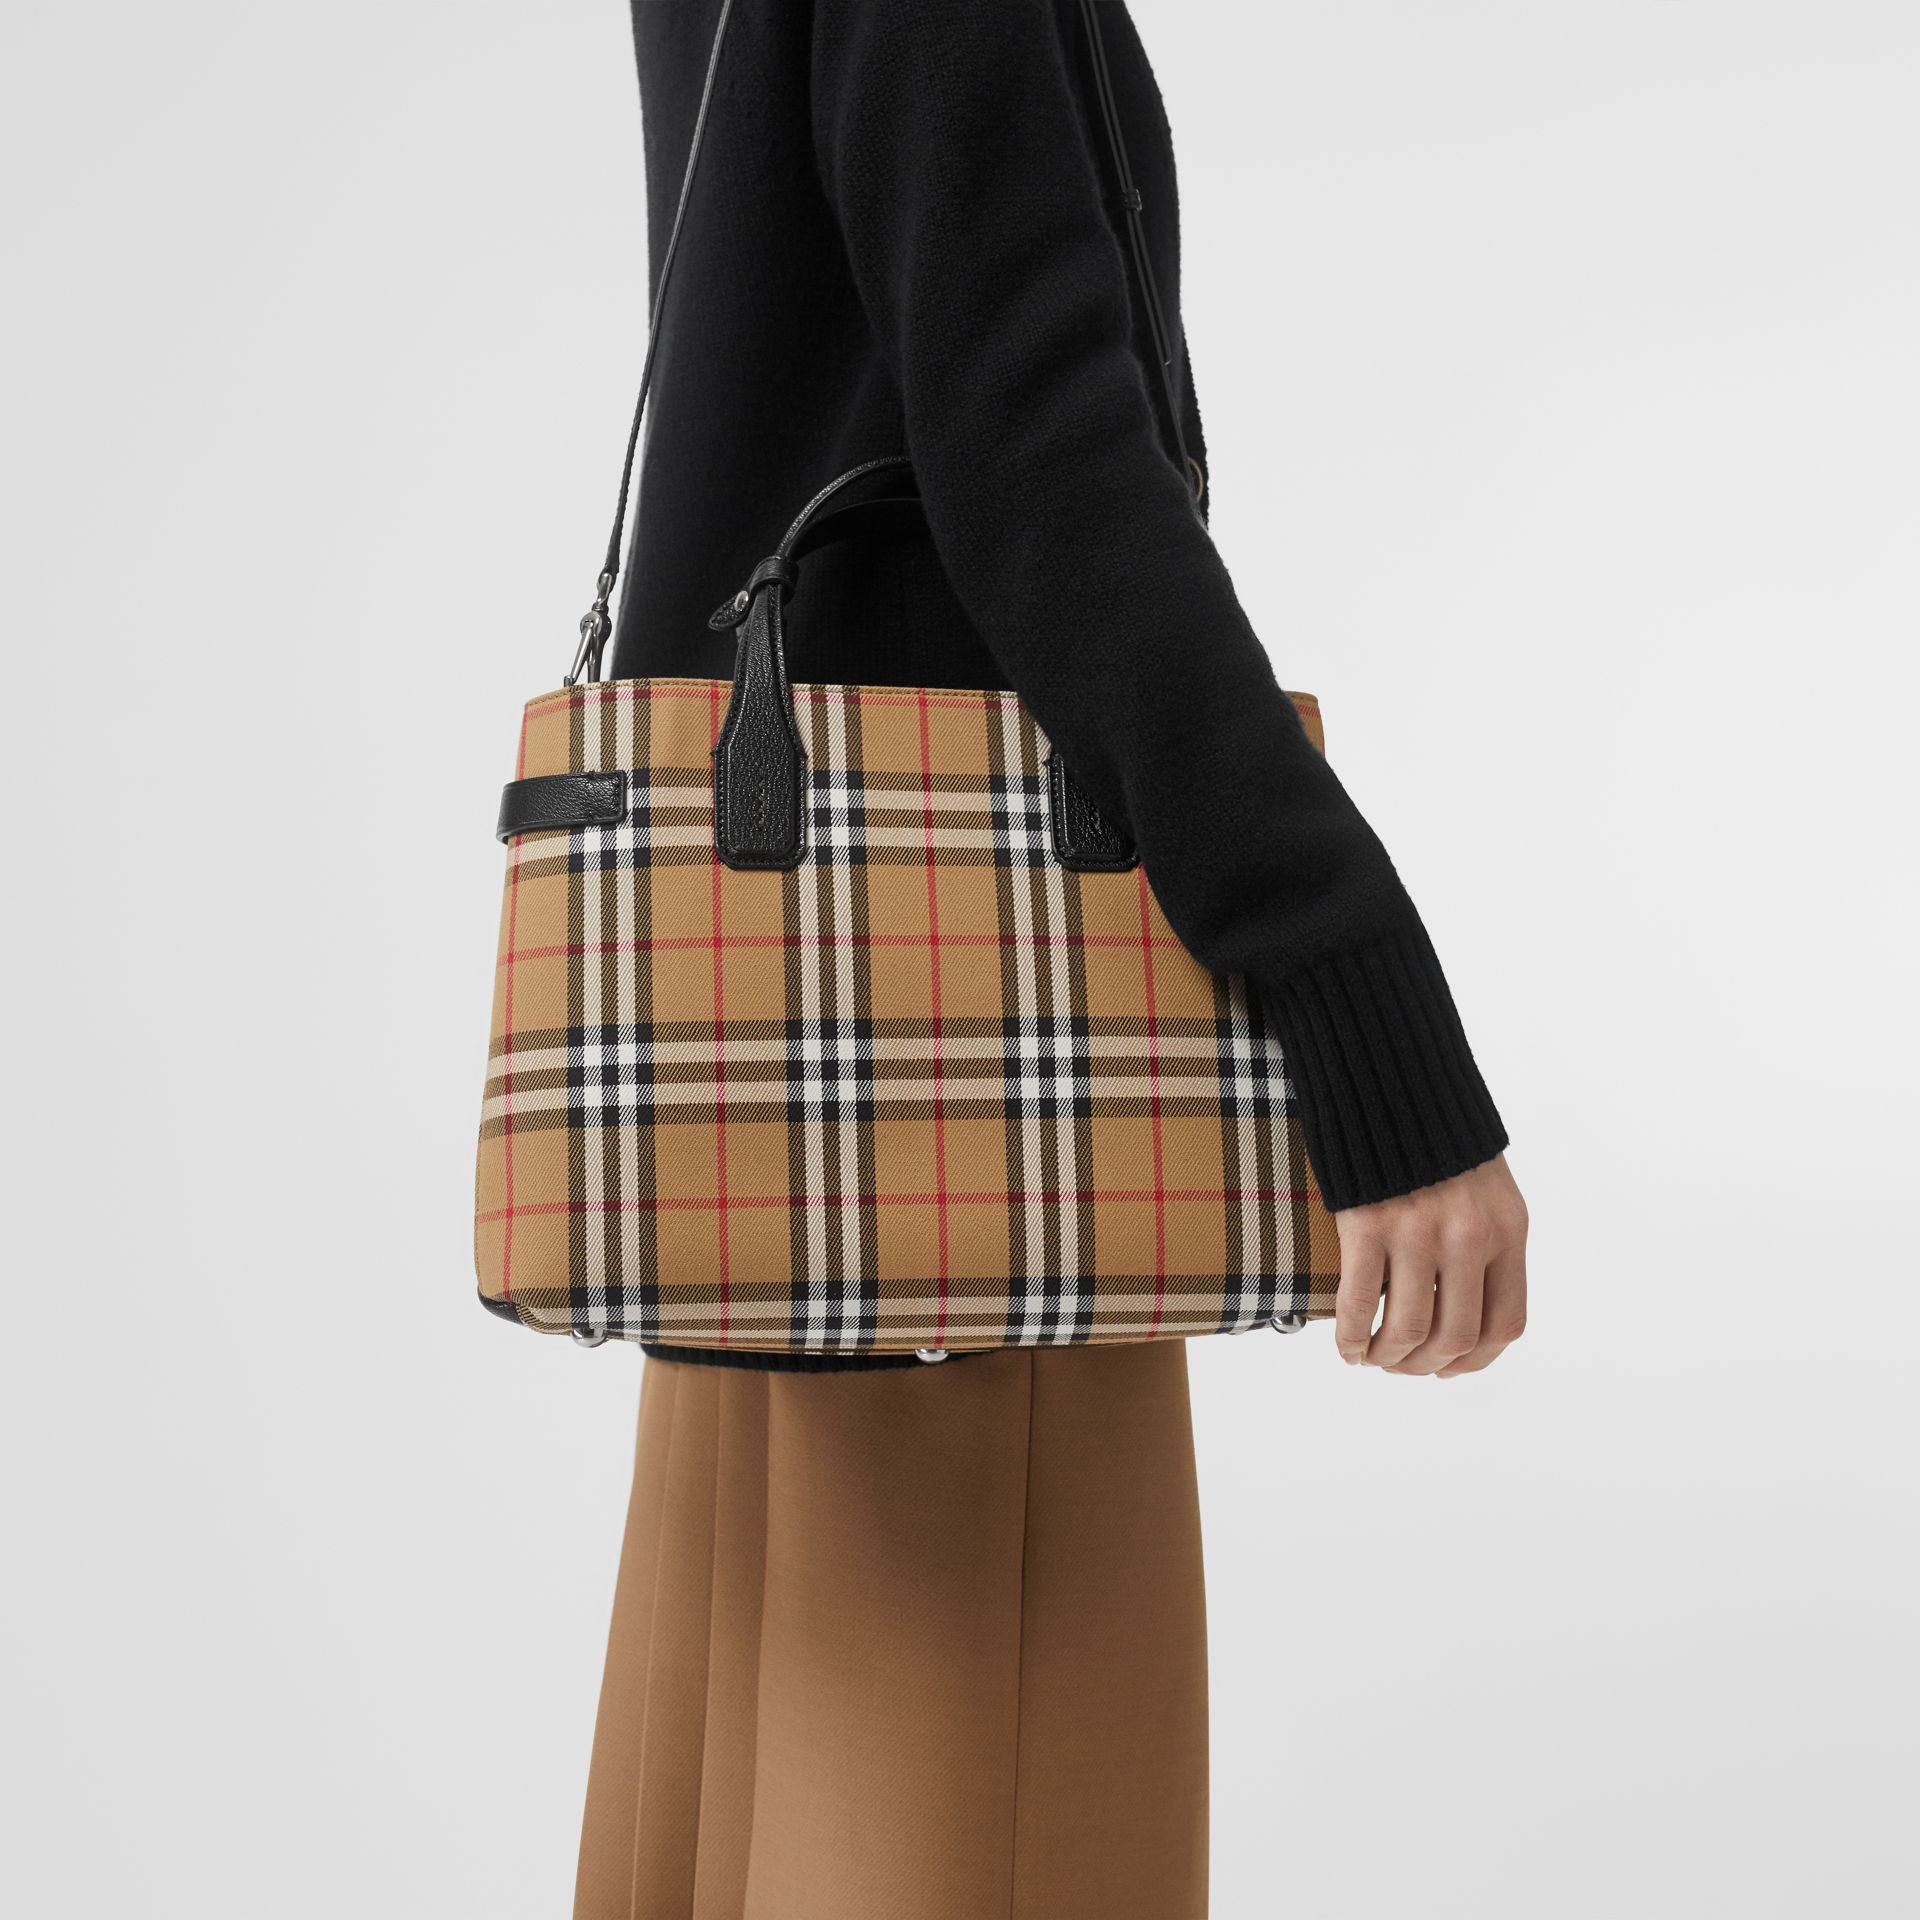 Sac The Banner moyen en cuir et Vintage check (Noir) - Femme | Burberry Canada - photo de la galerie 2